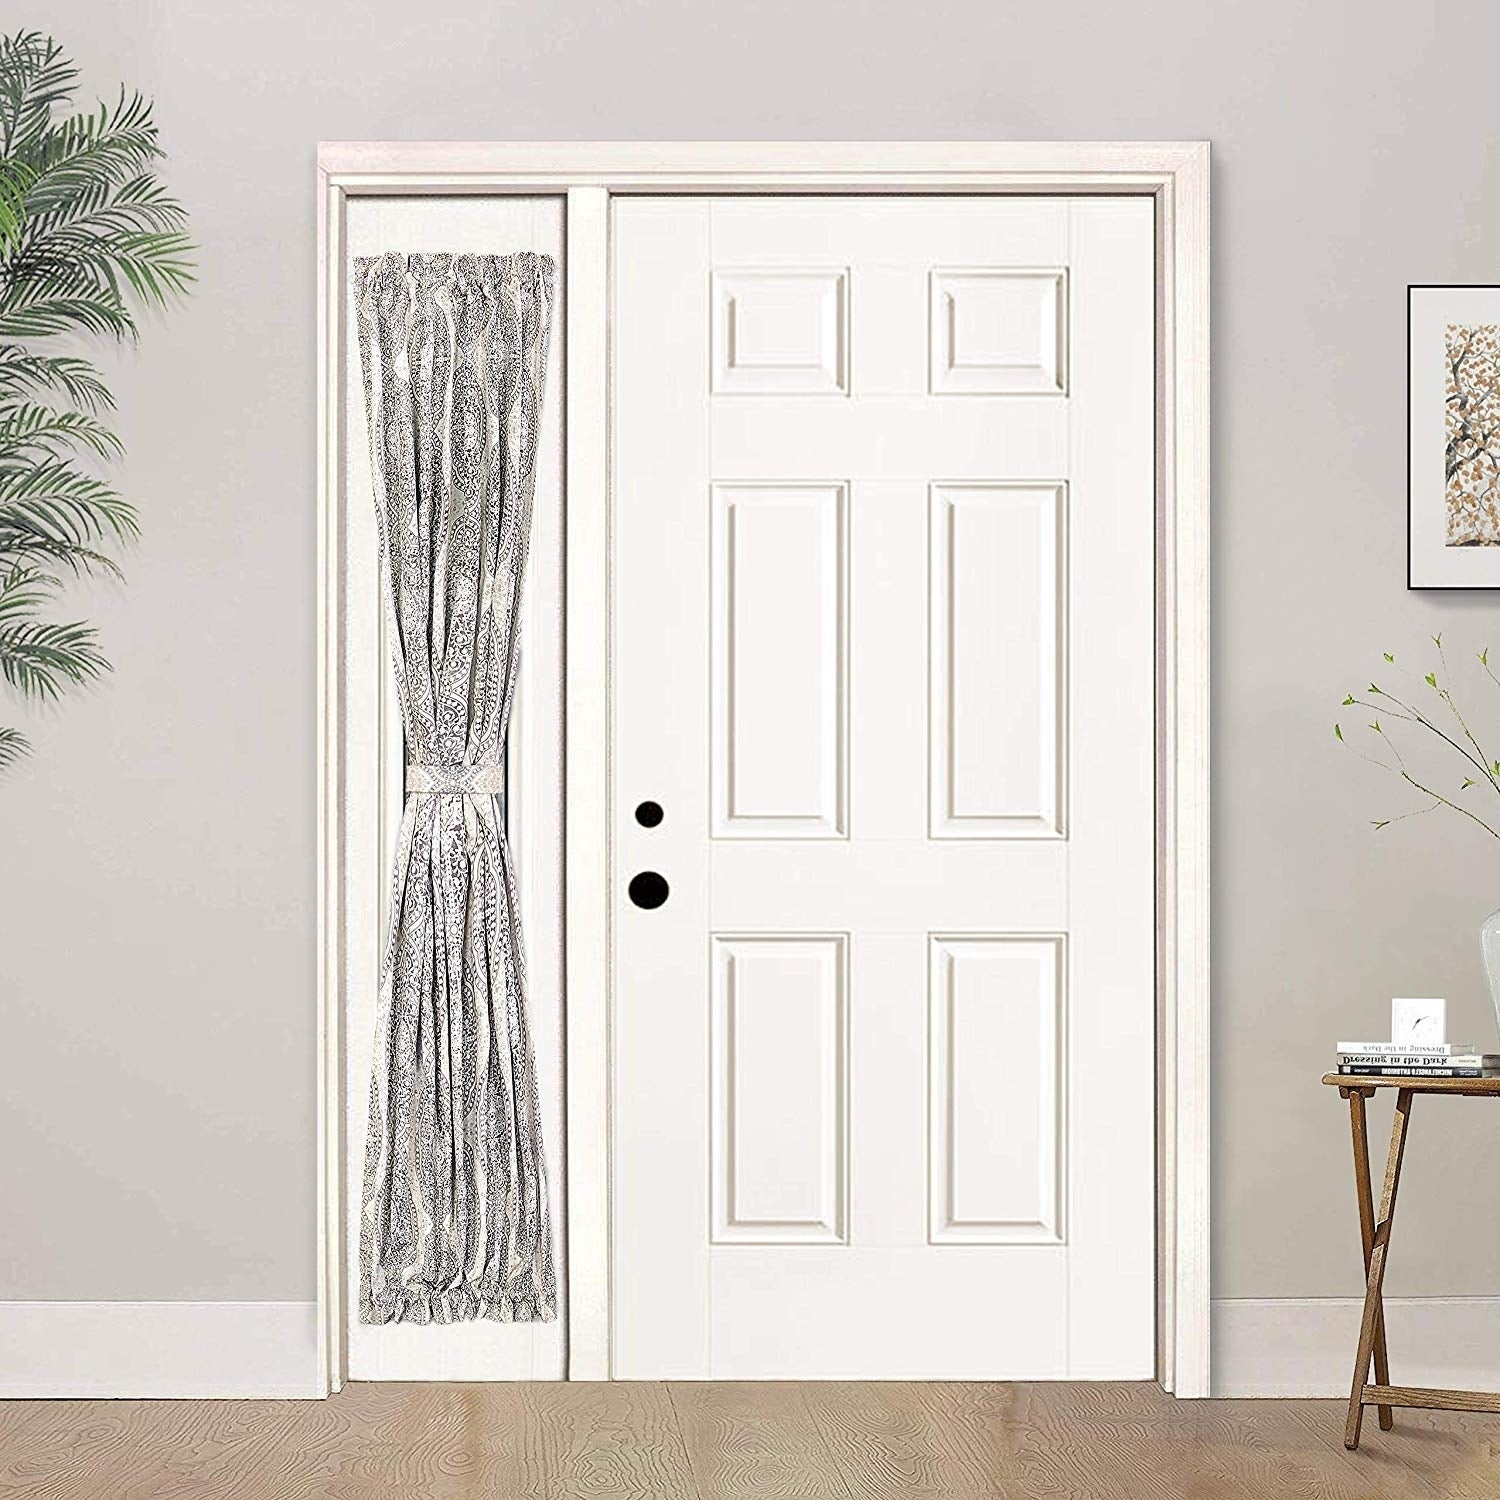 Merveilleux Shop DriftAway Adrianne Rod Pocket Room Darkening Patio French Door Single  Curtain Panel   On Sale   Free Shipping On Orders Over $45   Overstock    25449057